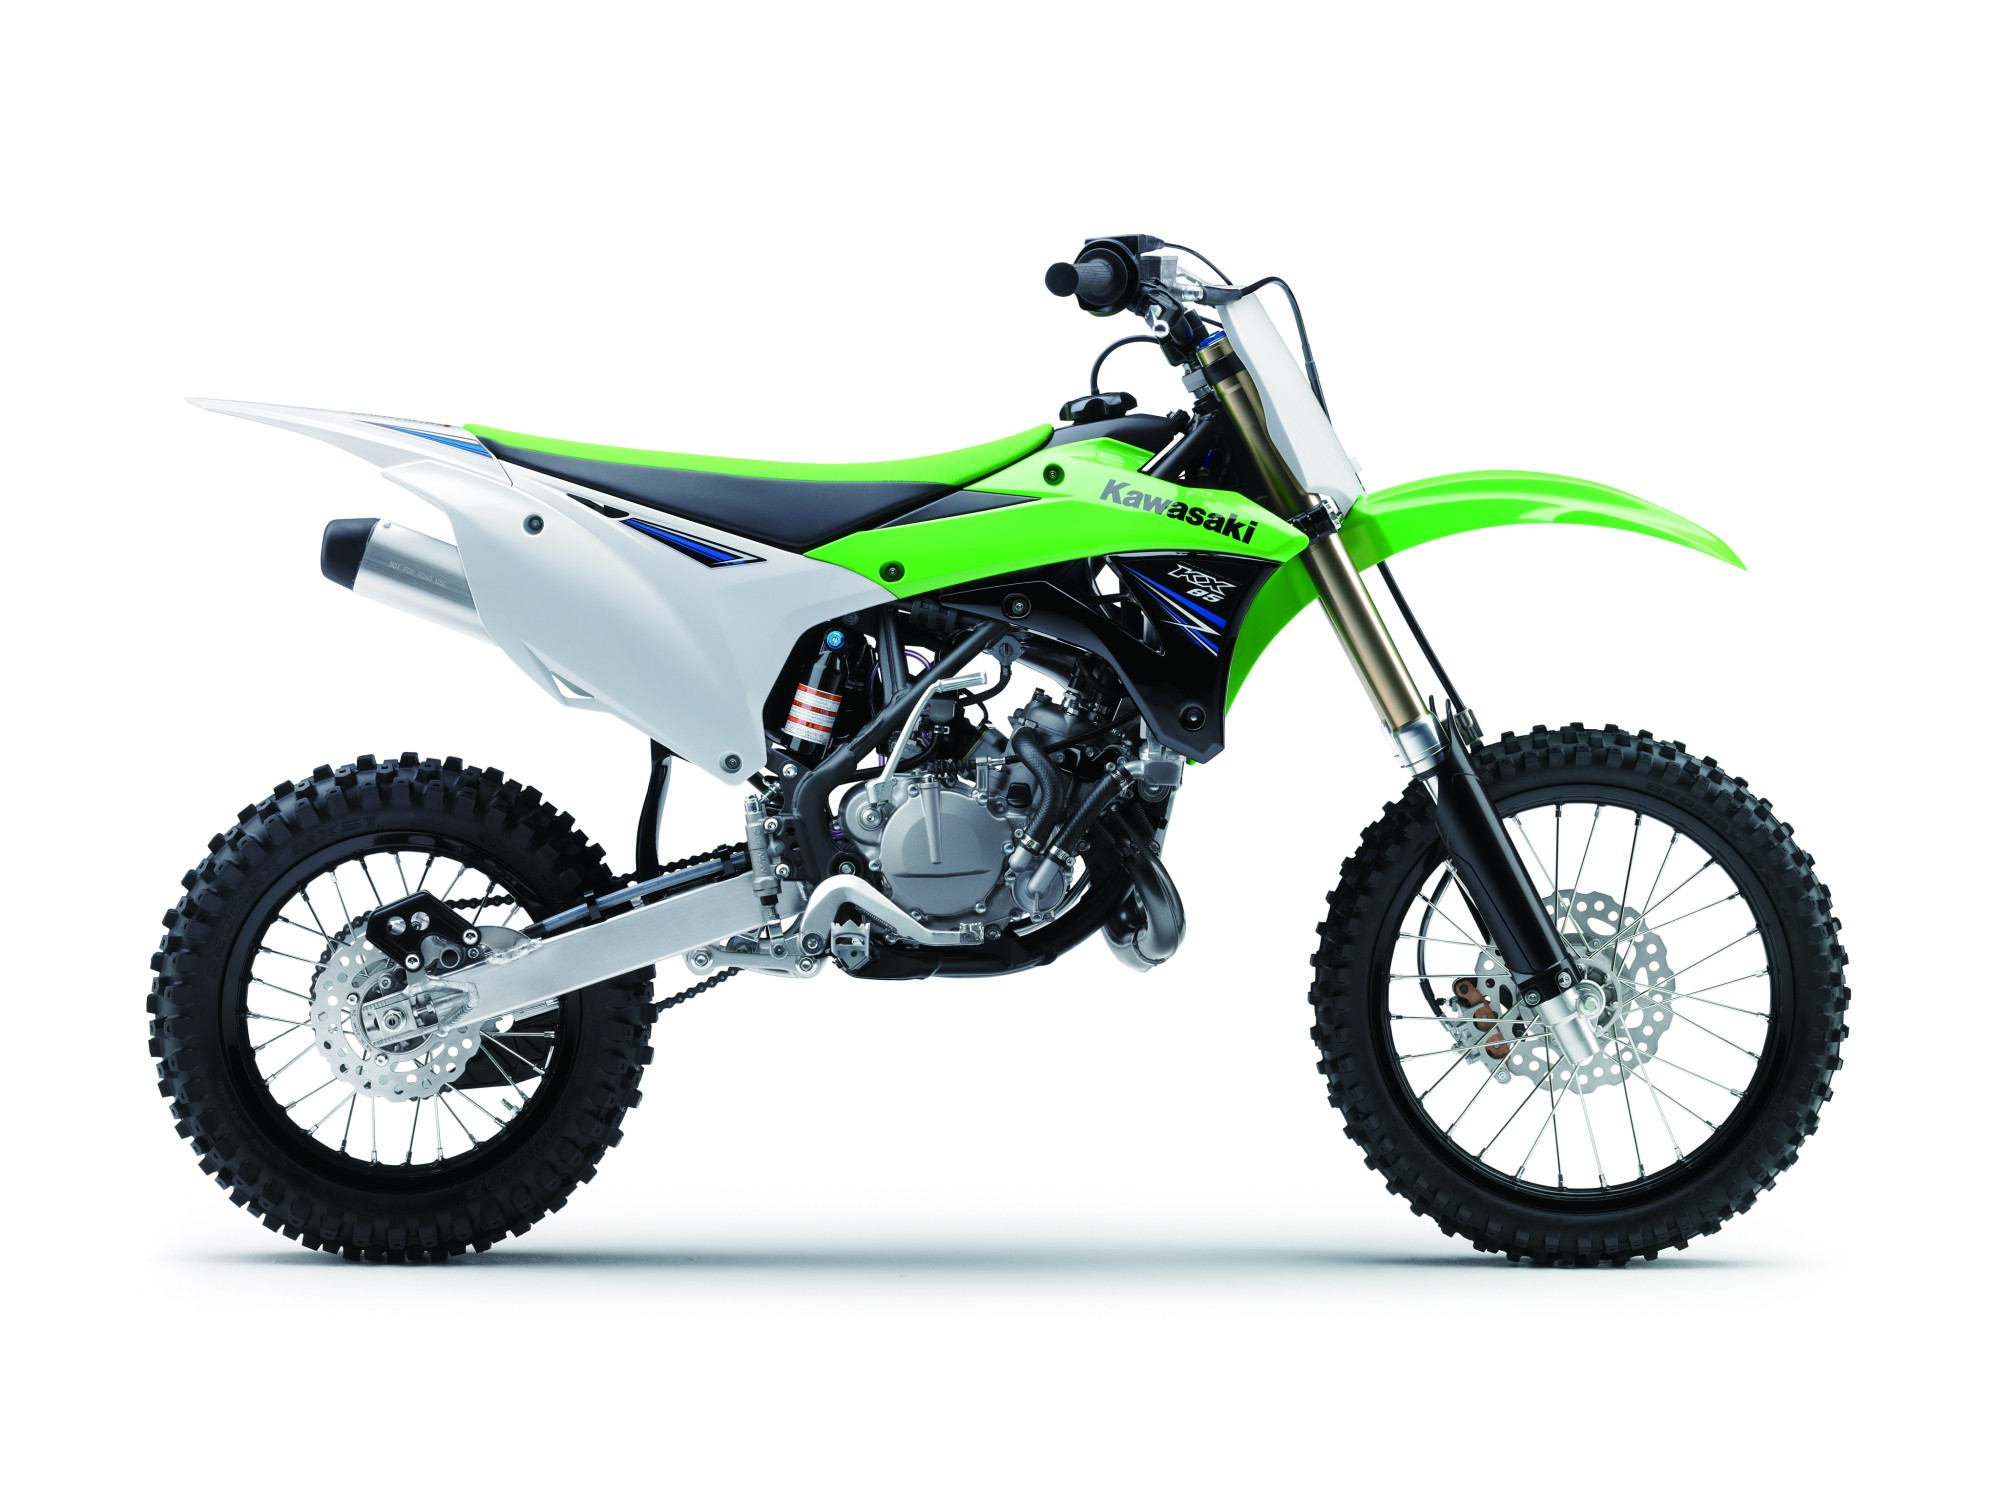 kawasaki kx 85 ii bilder und technische daten. Black Bedroom Furniture Sets. Home Design Ideas